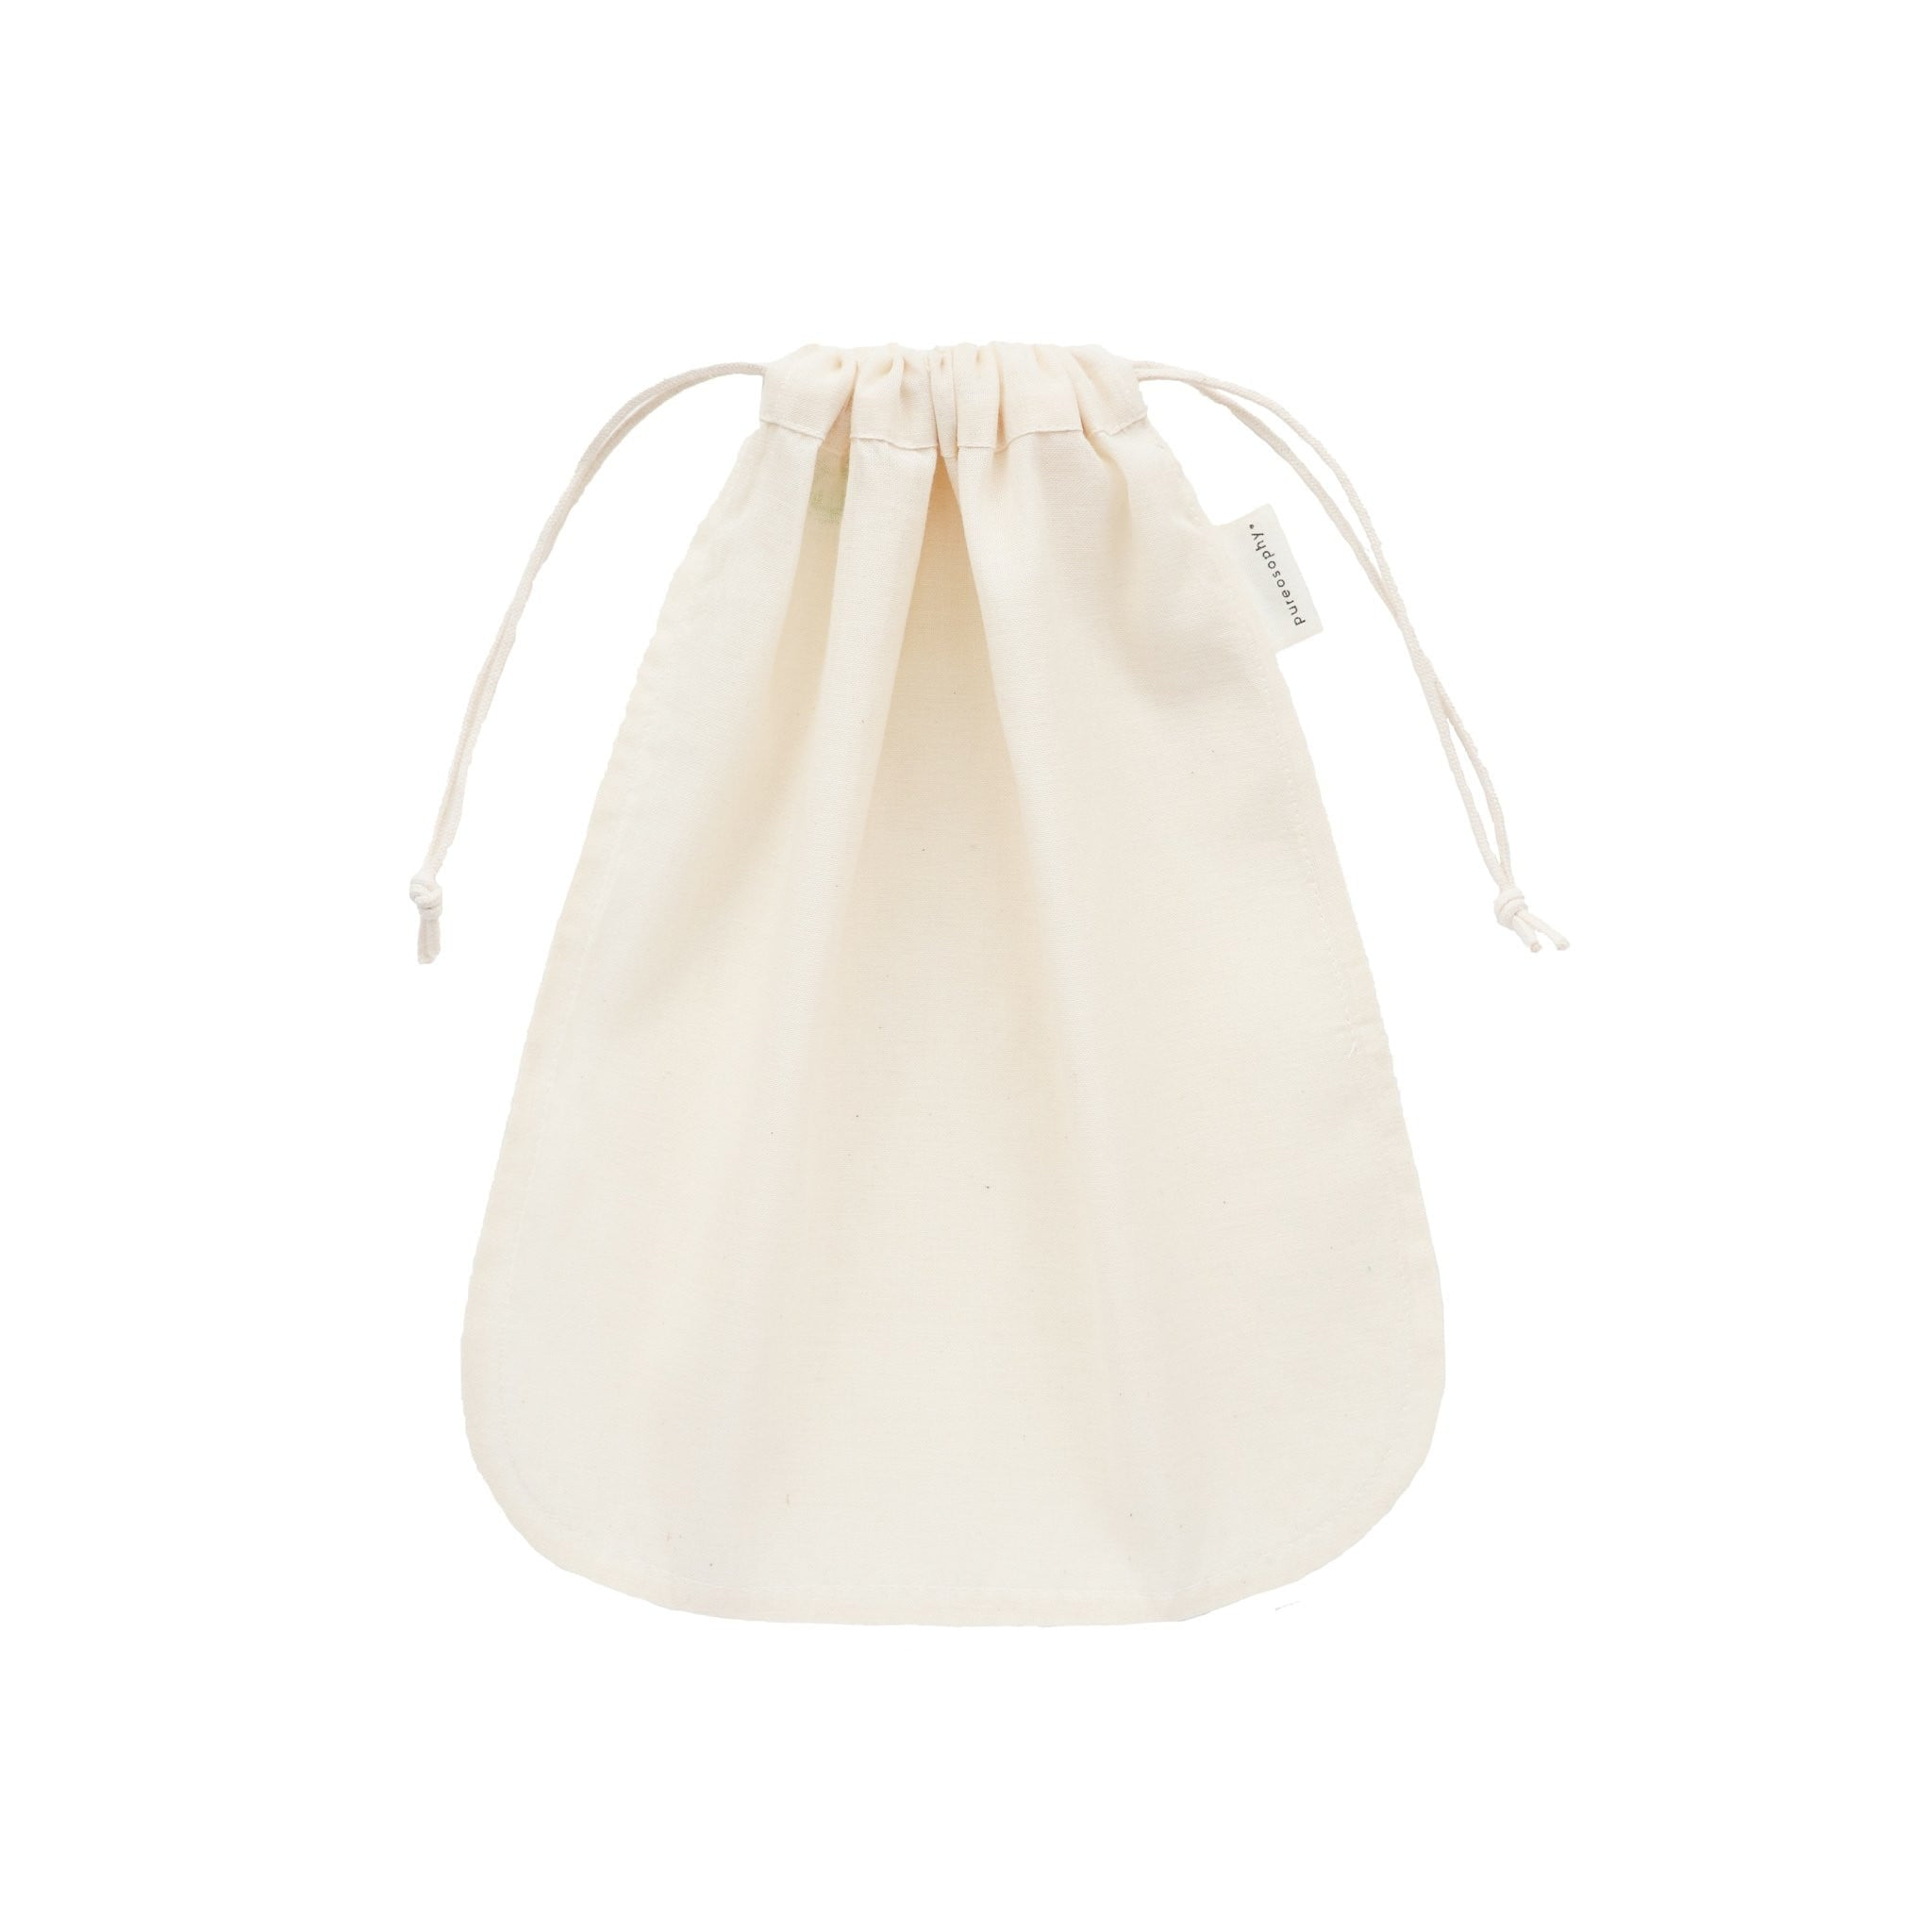 Reusable organic cotton nutmilk bag